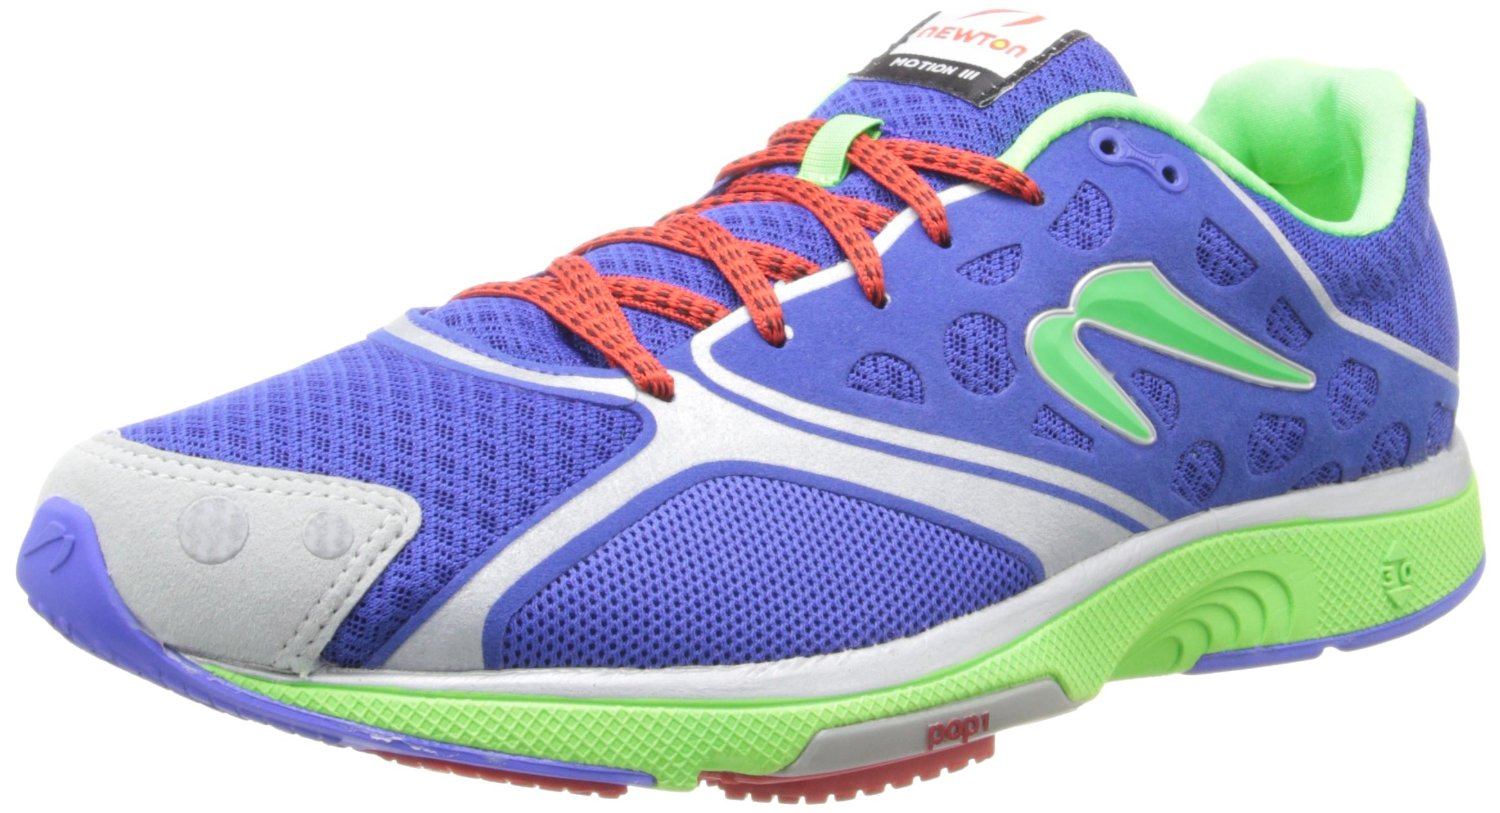 201608_running-wear-shoes-perfect-guide_069